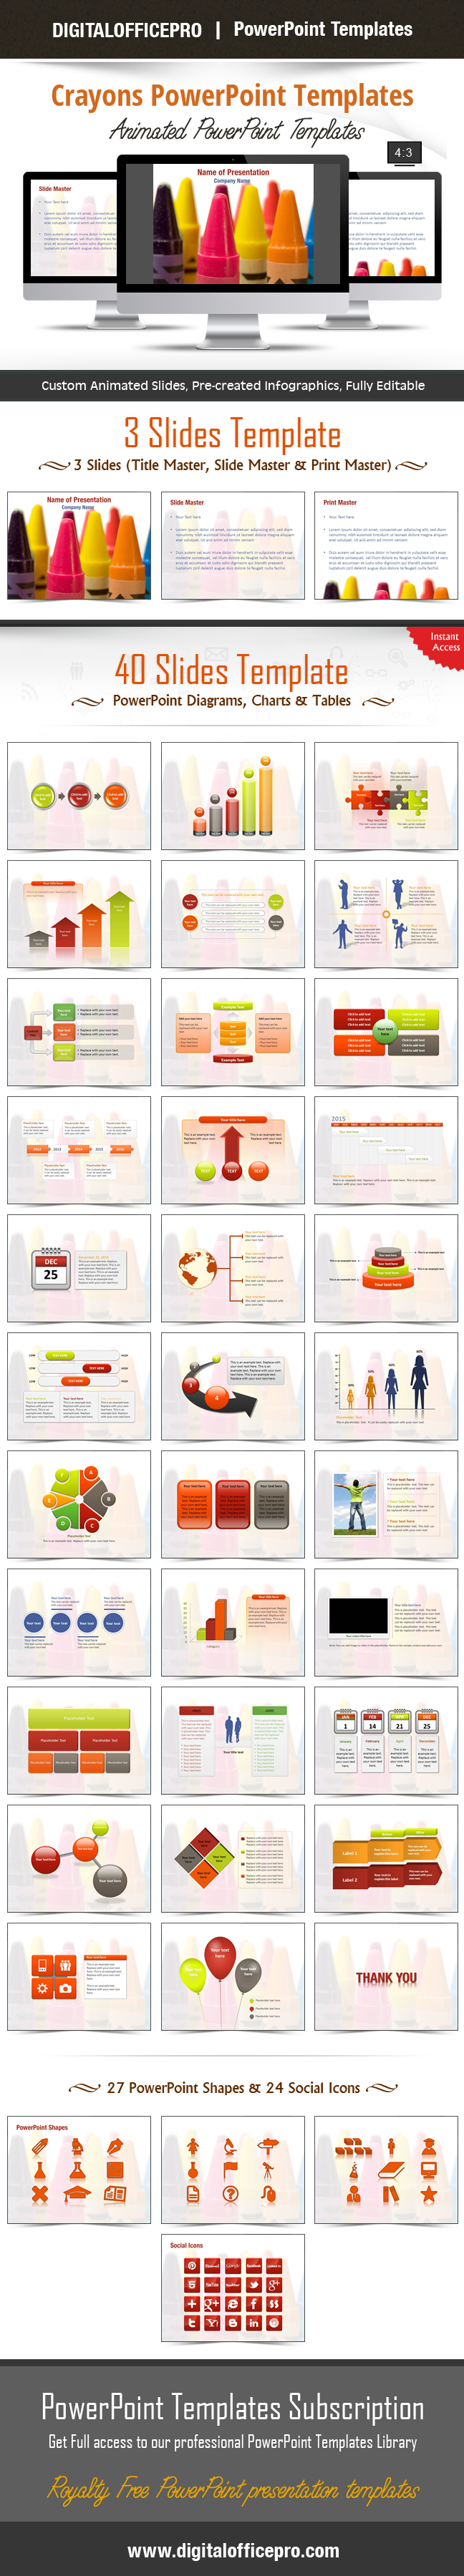 Crayons powerpoint template backgrounds impress and engage your audience with crayons powerpoint template and crayons powerpoint backgrounds from digitalofficepro toneelgroepblik Choice Image